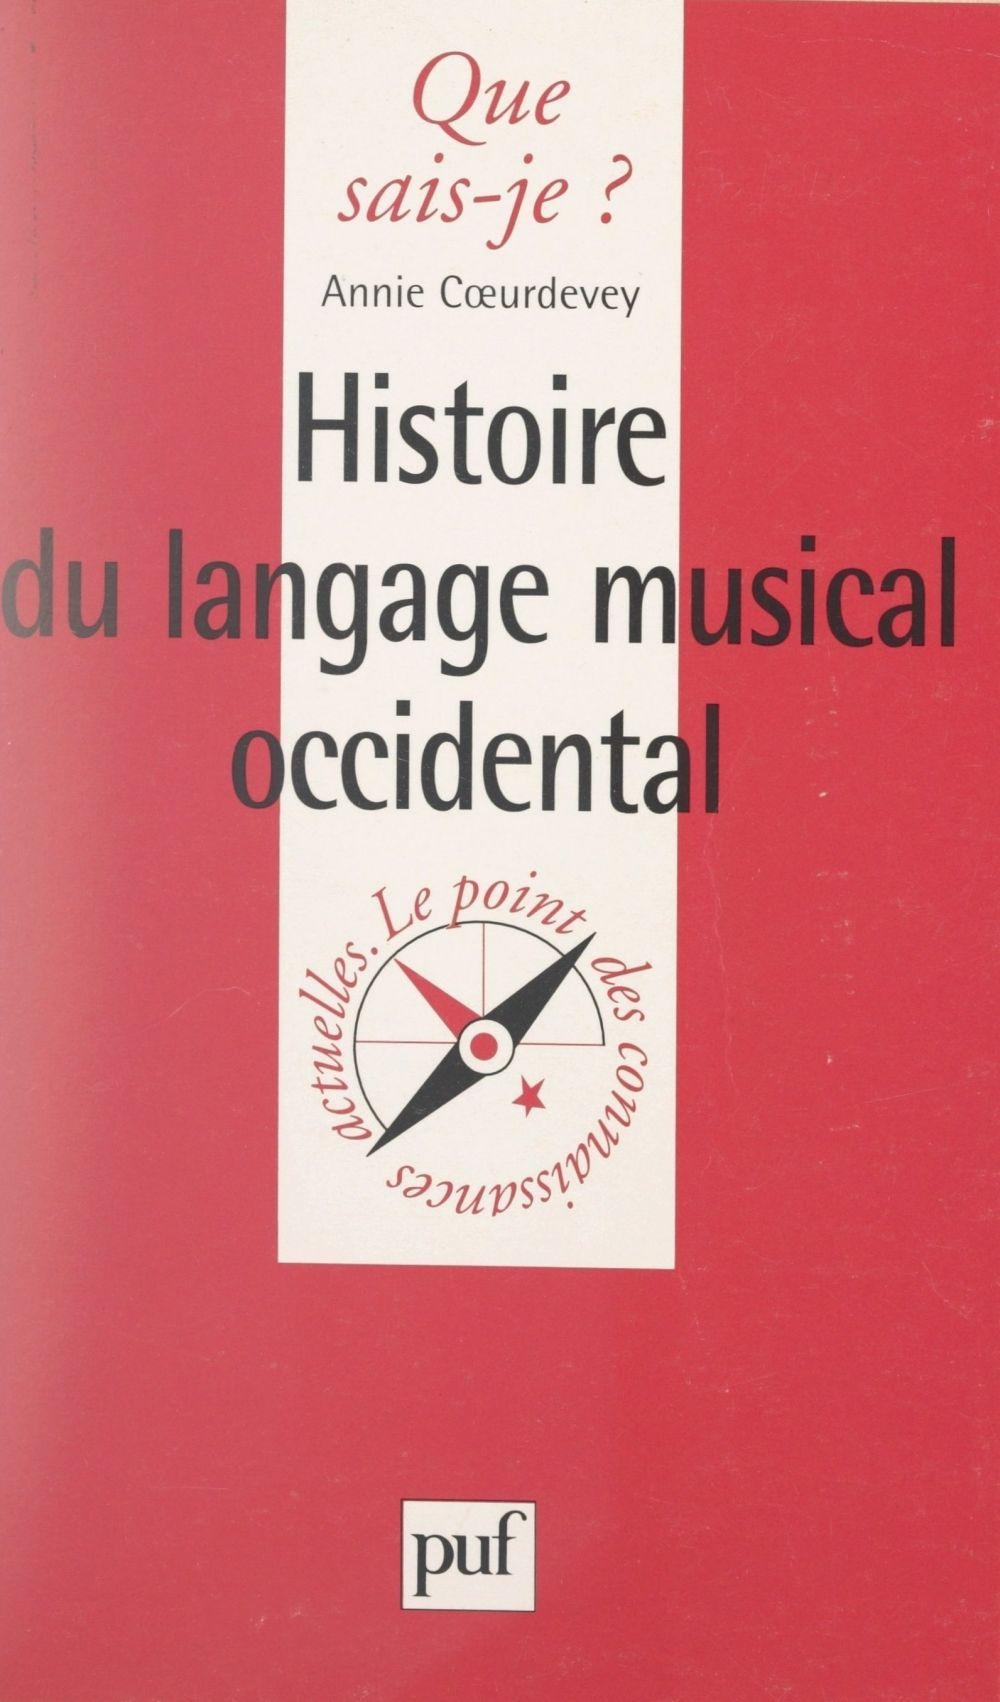 Histoire du langage musical occidental